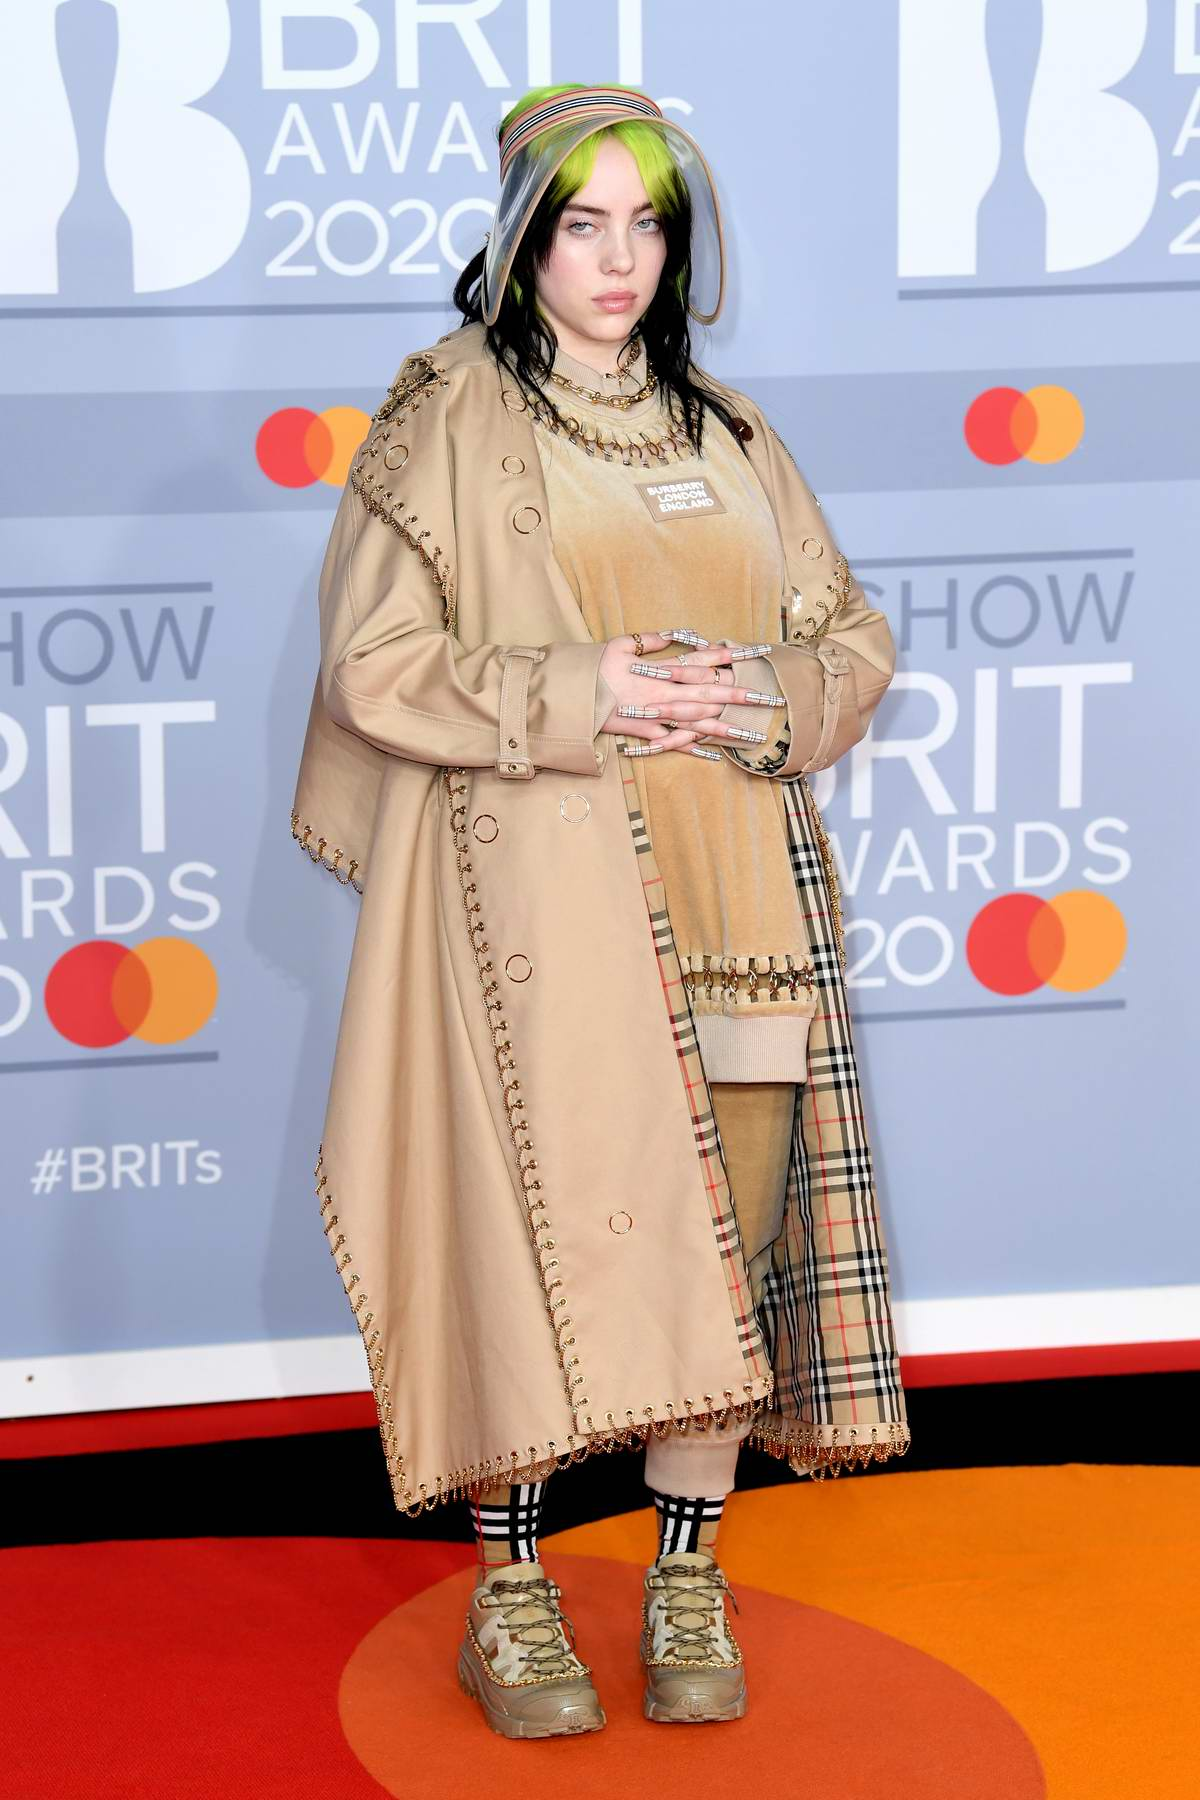 Billie Eilish attends the BRIT Awards 2020 at The O2 Arena in London, UK